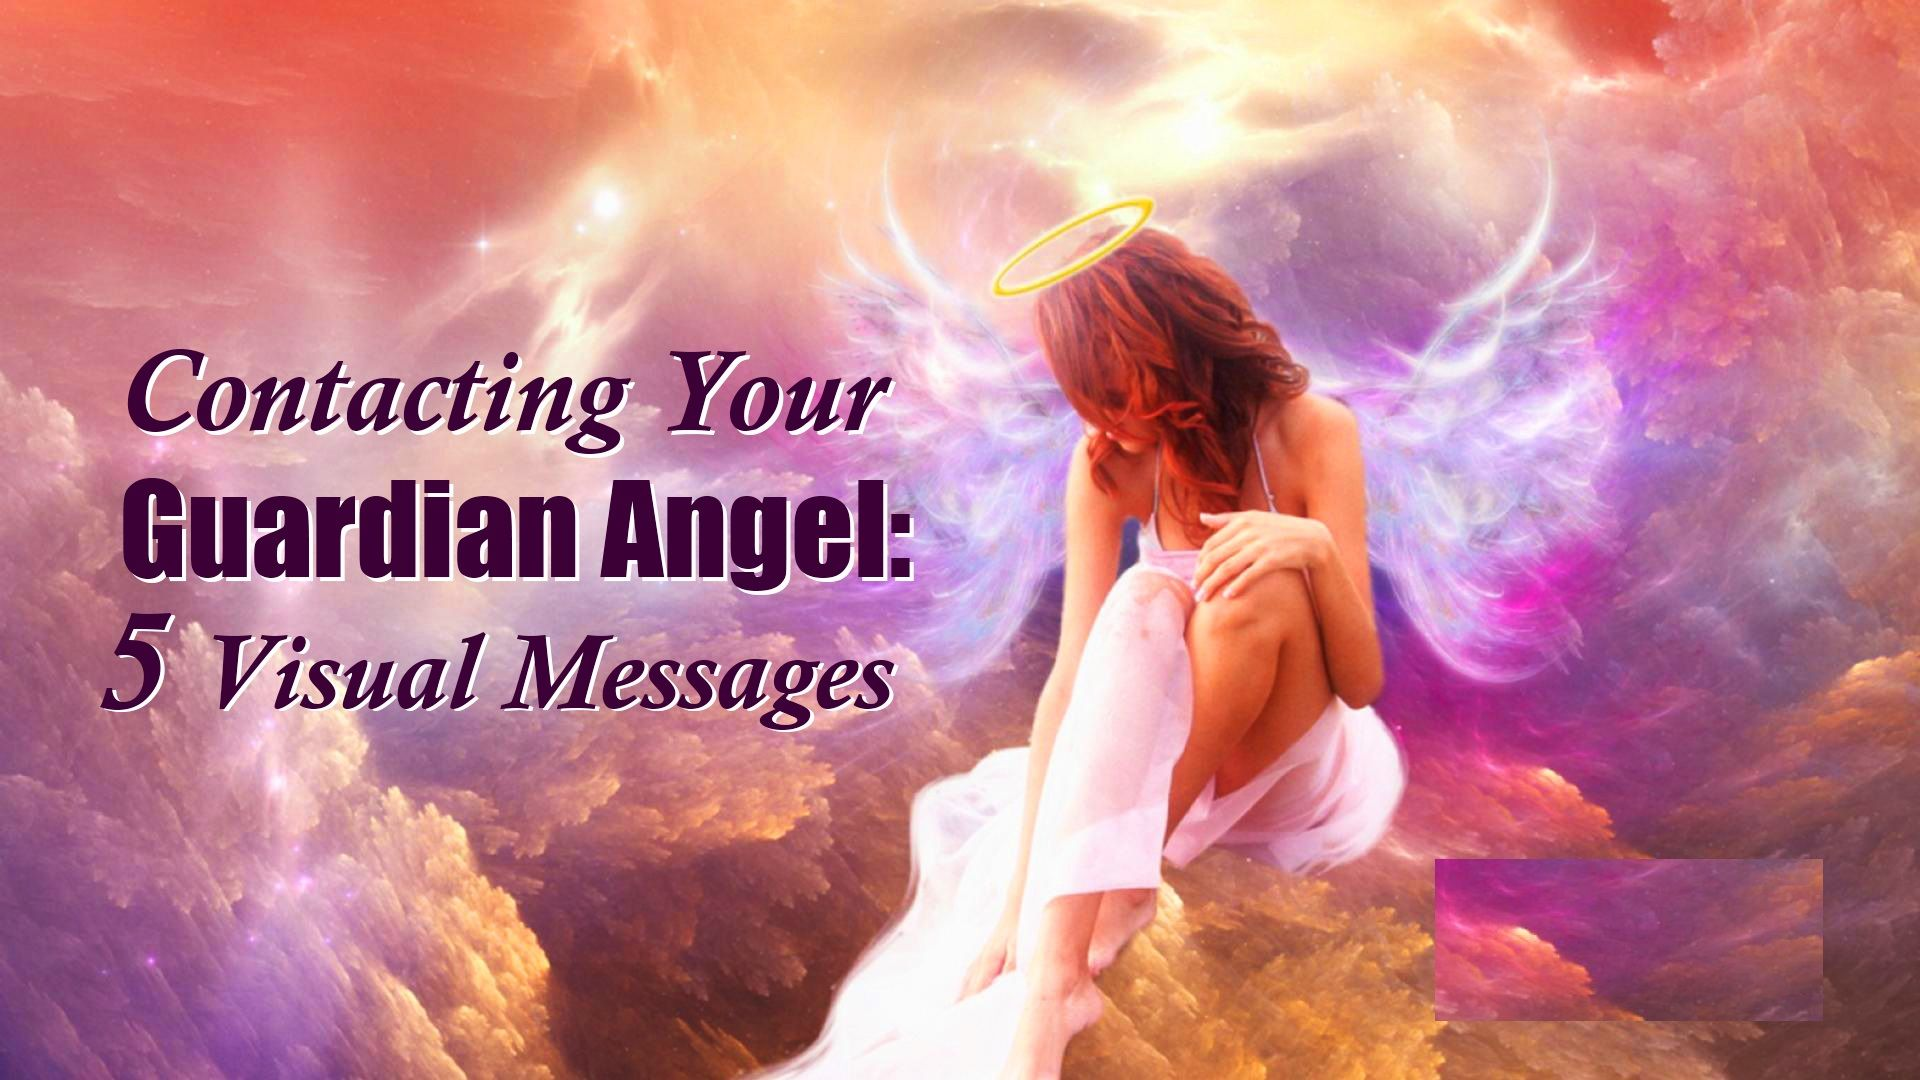 Contacting Your Guardian Angel: 5 Visual Messages